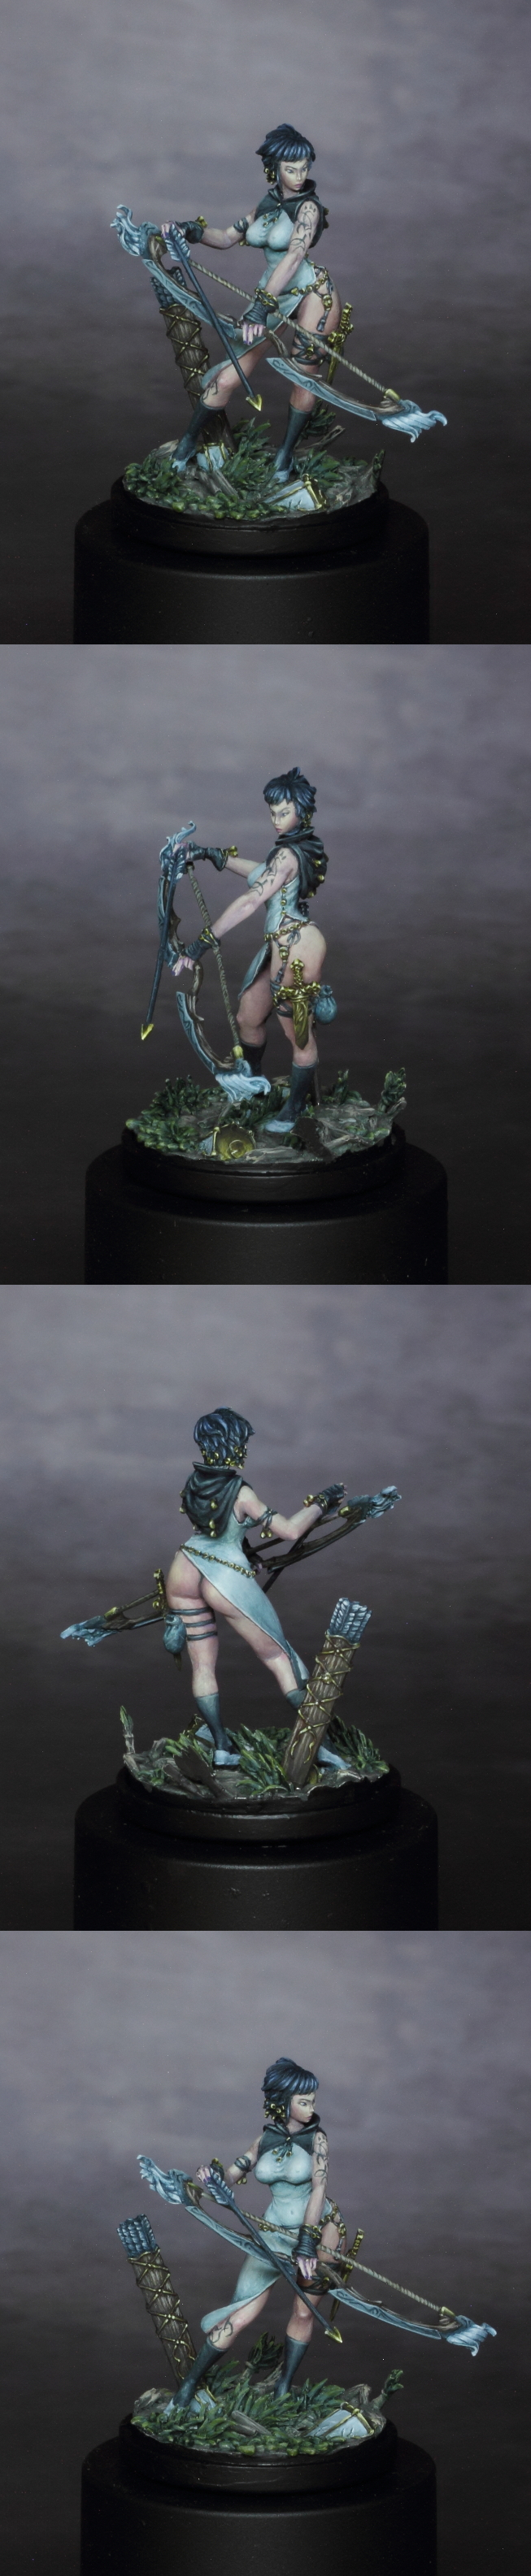 Kingdom Death Ranger